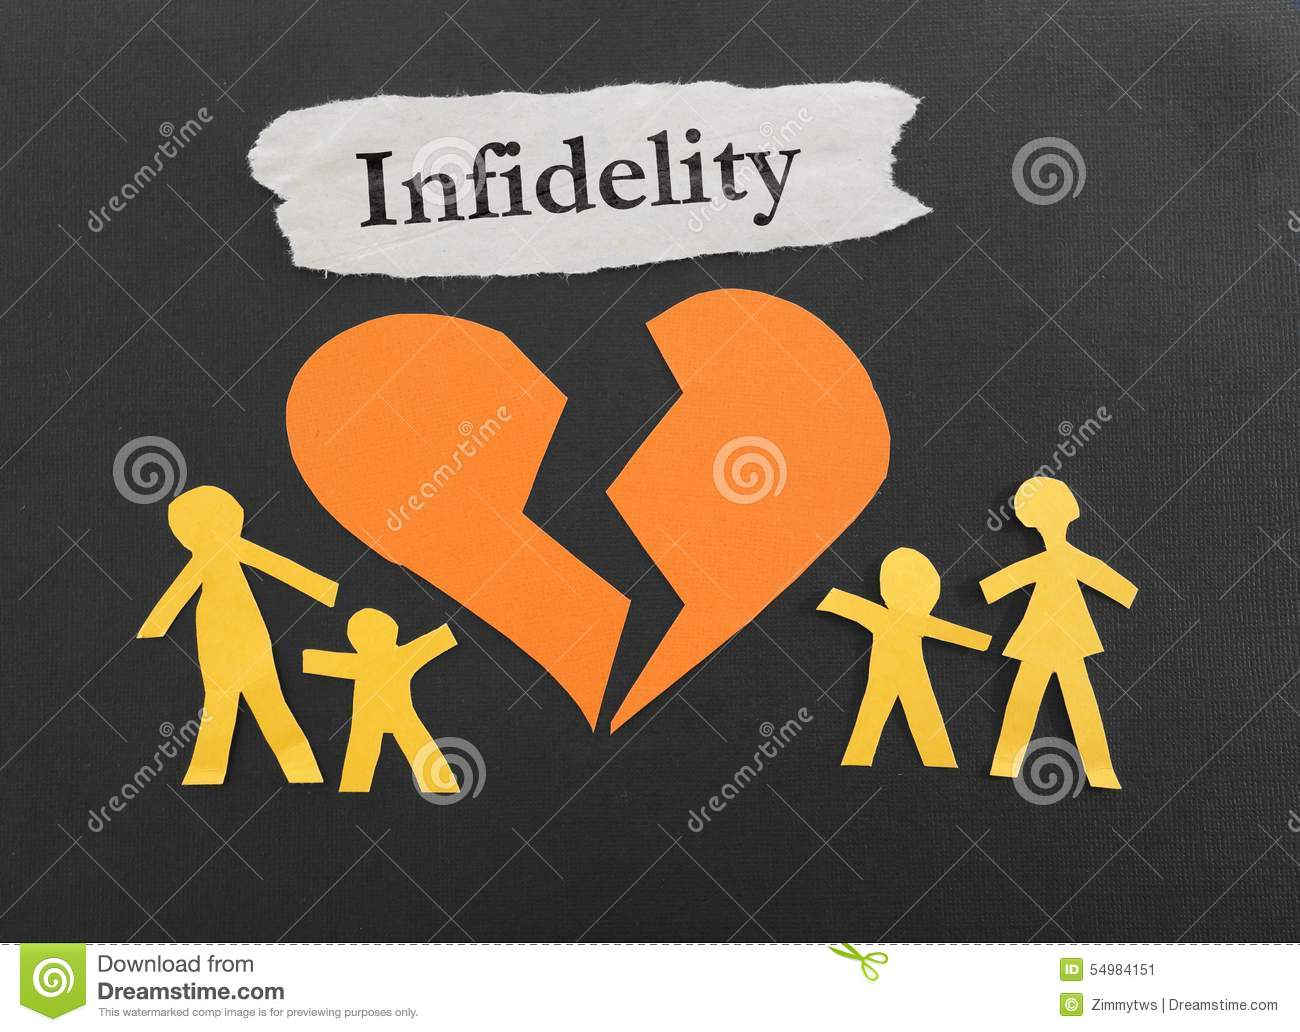 infidelity unfaithfulness and modesty in betrayal essay In the recent past most people would have said that terms like infidelity and affairs simply referred to relationships long-term emotional effects of betrayal.